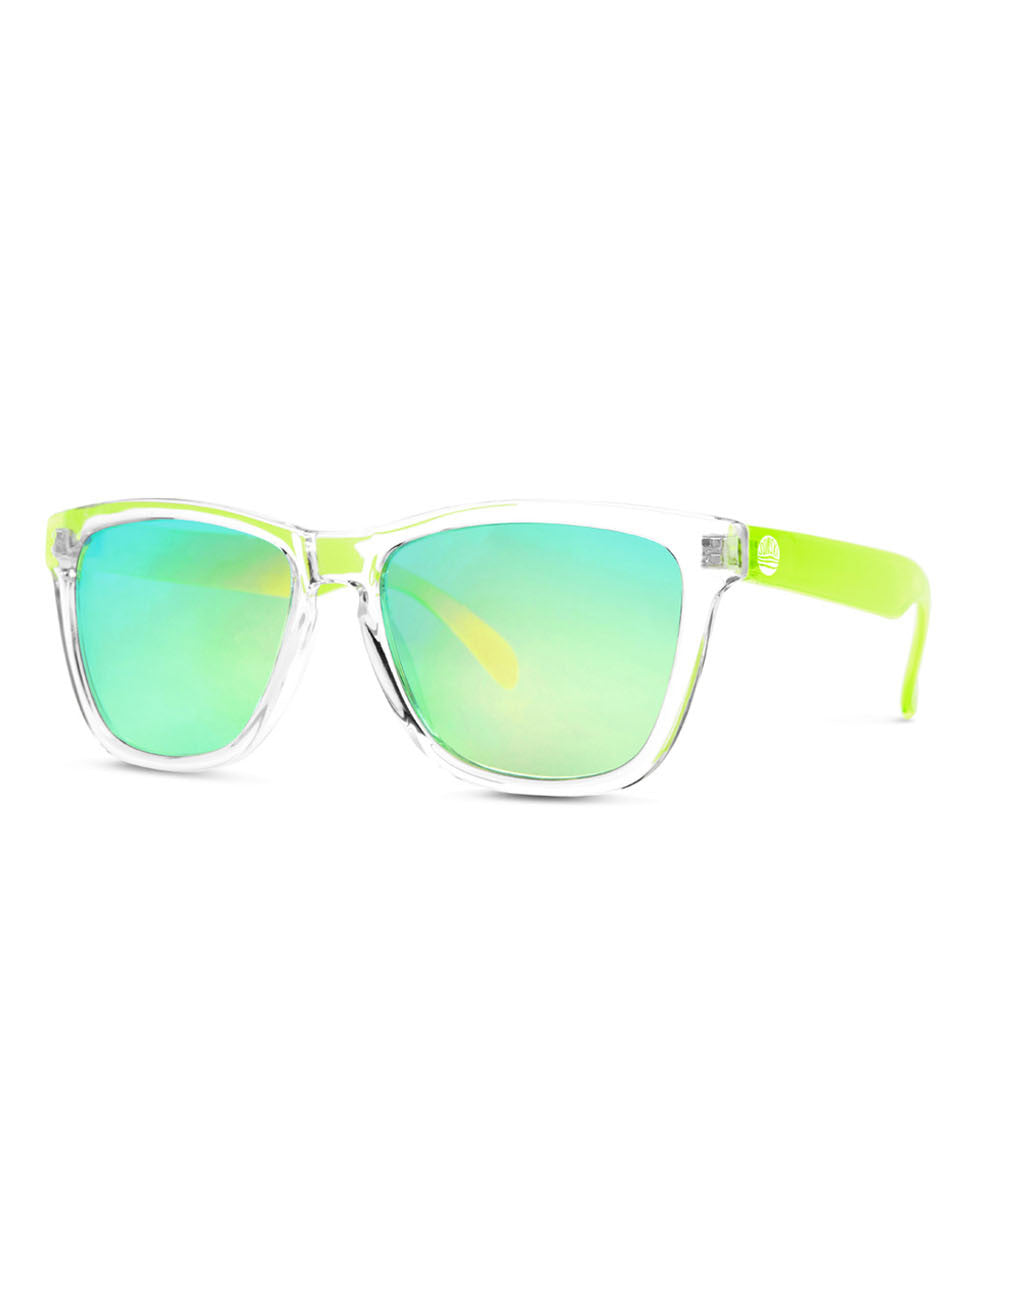 Sunski Original SunglassesLime_master_image